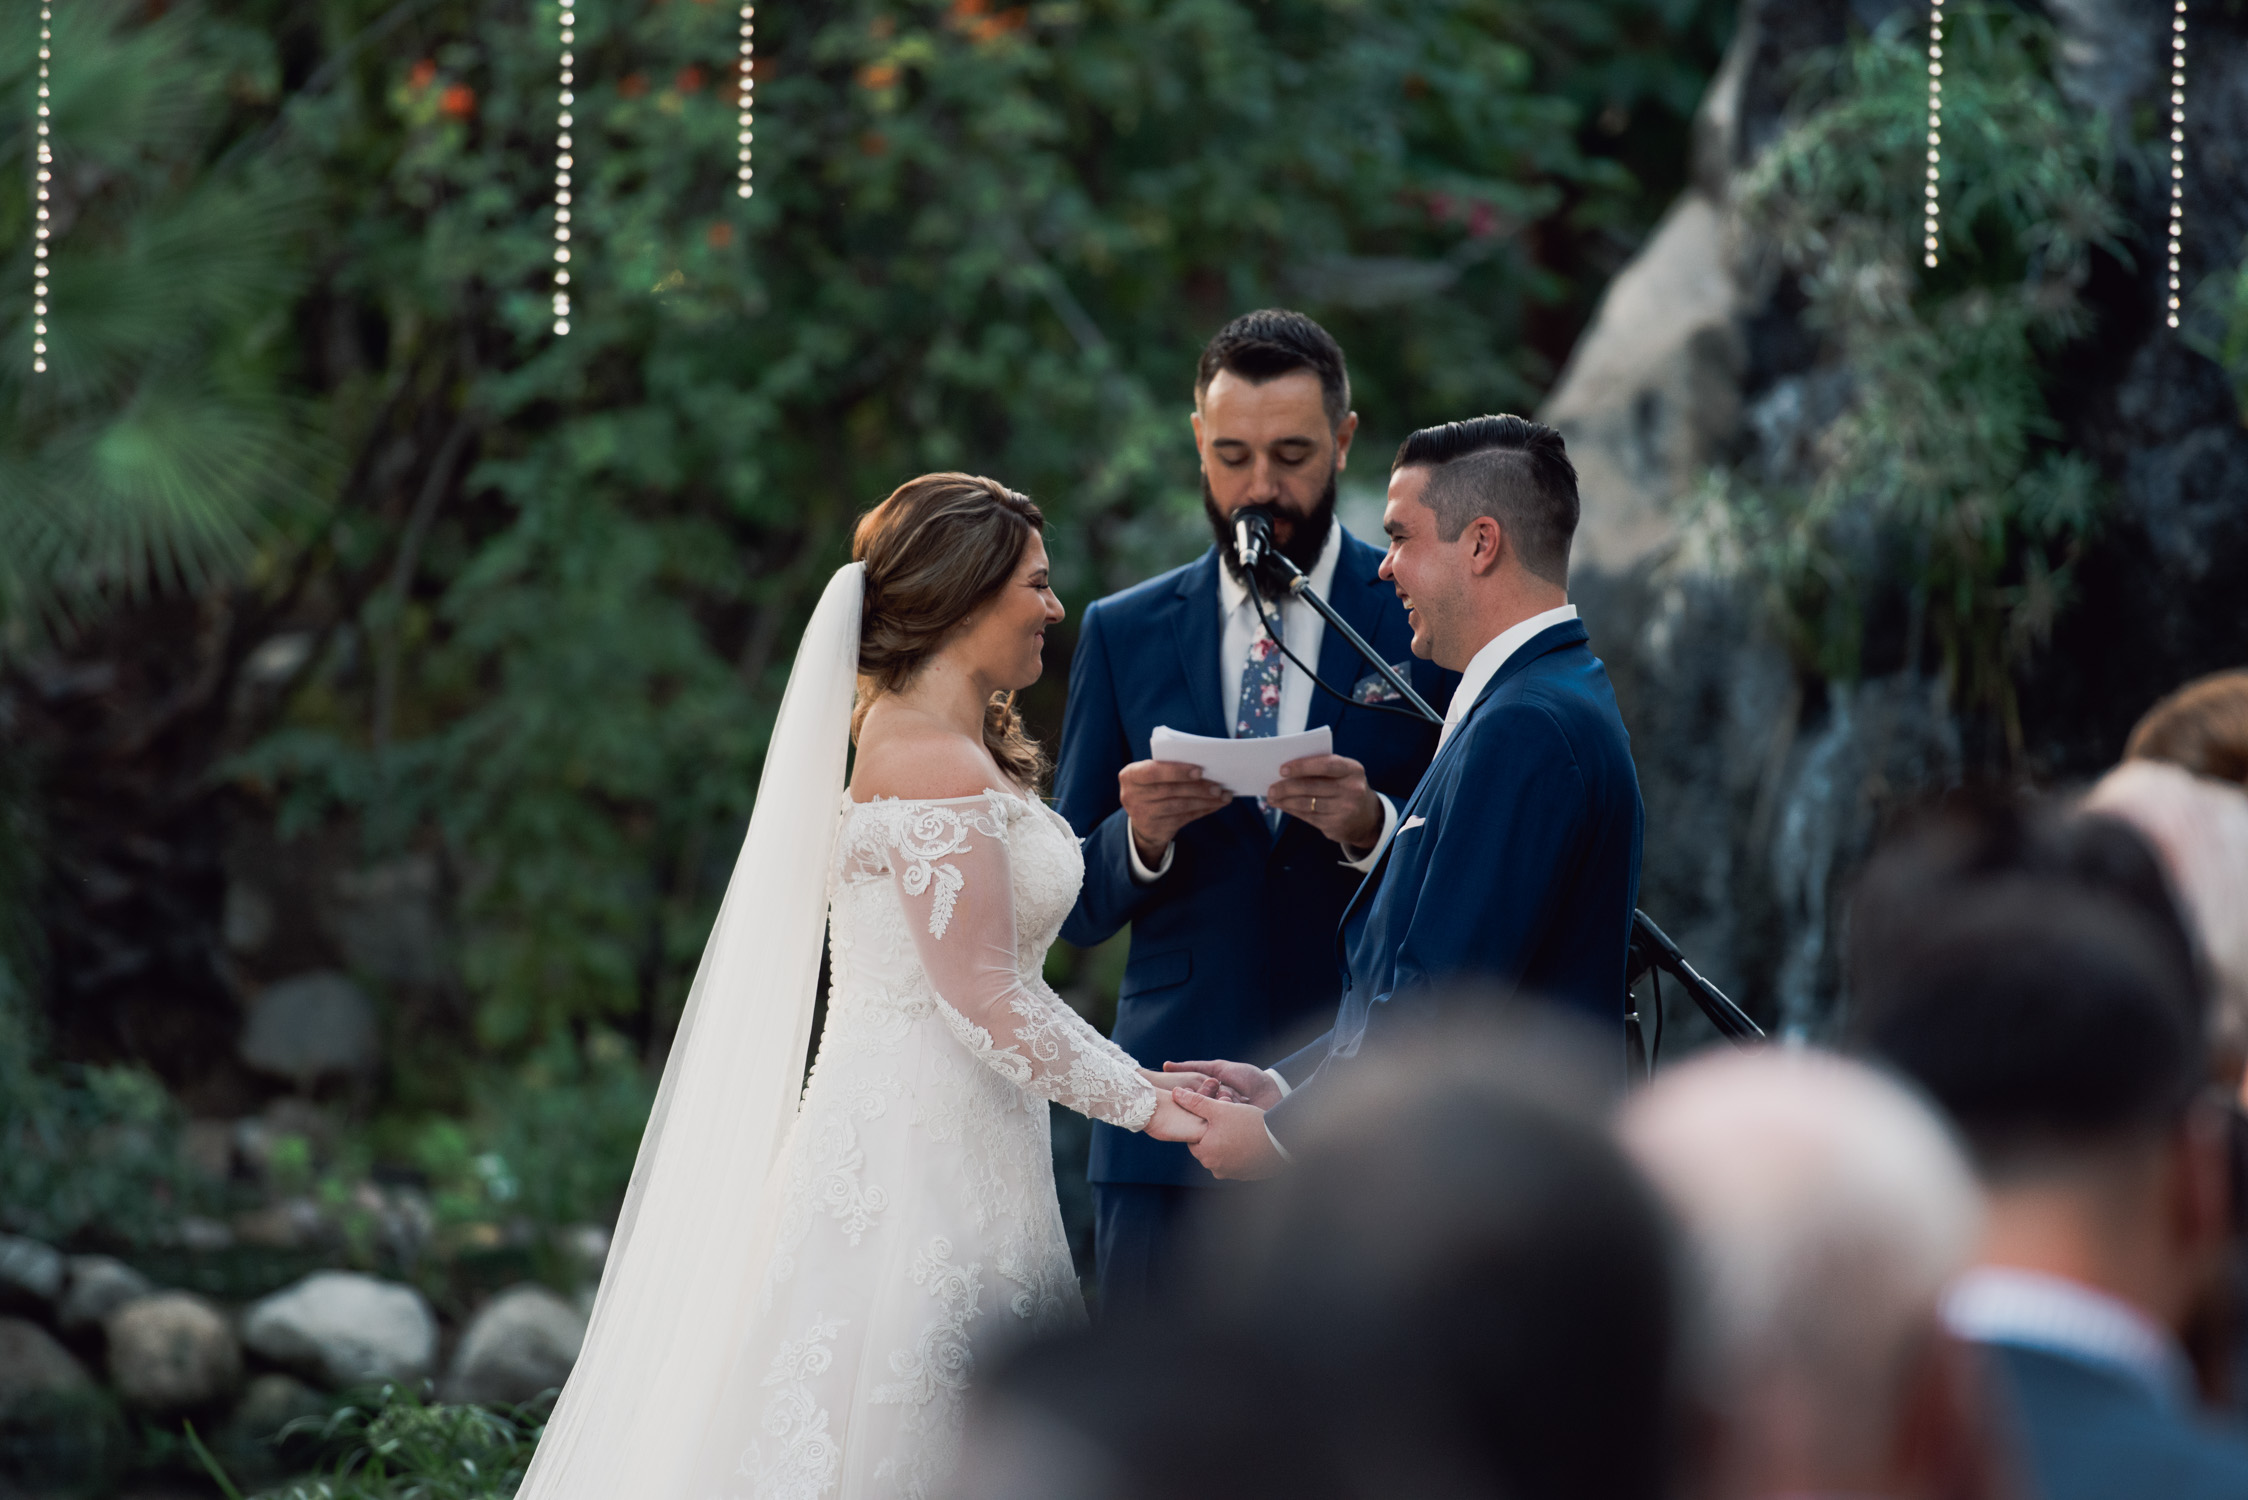 181103_Costa-wedding_440_web.jpg